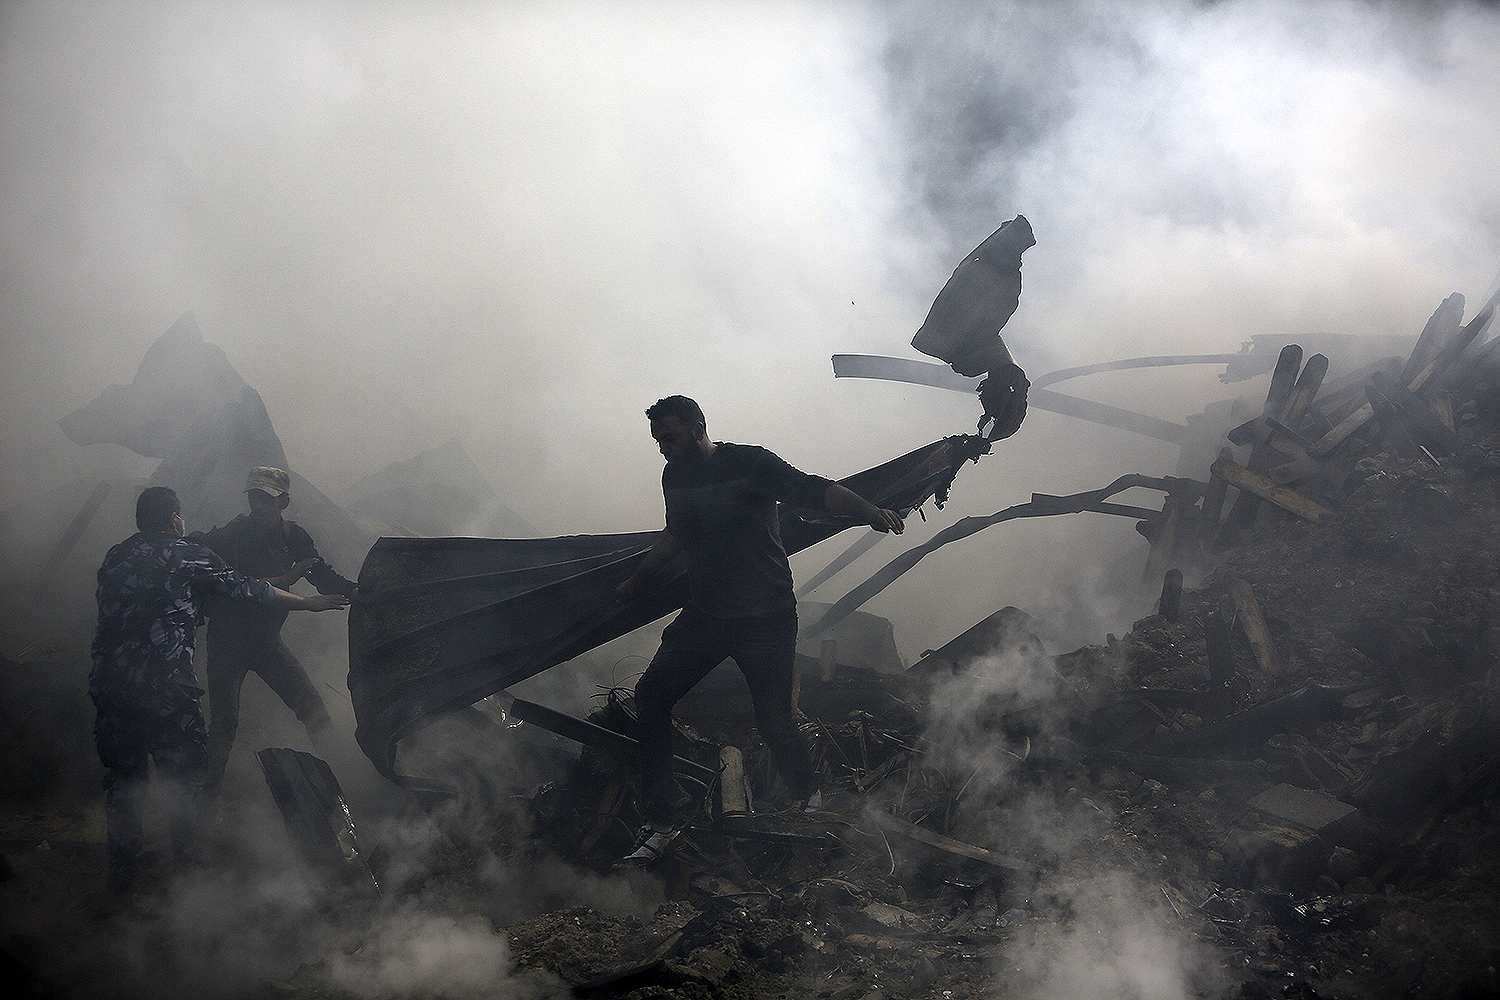 Palestinians put out a fire that broke out in a market in the refugee camp of Nuseirat in central Gaza Strip on March 5. MOHAMMED ABED/AFP via Getty Images